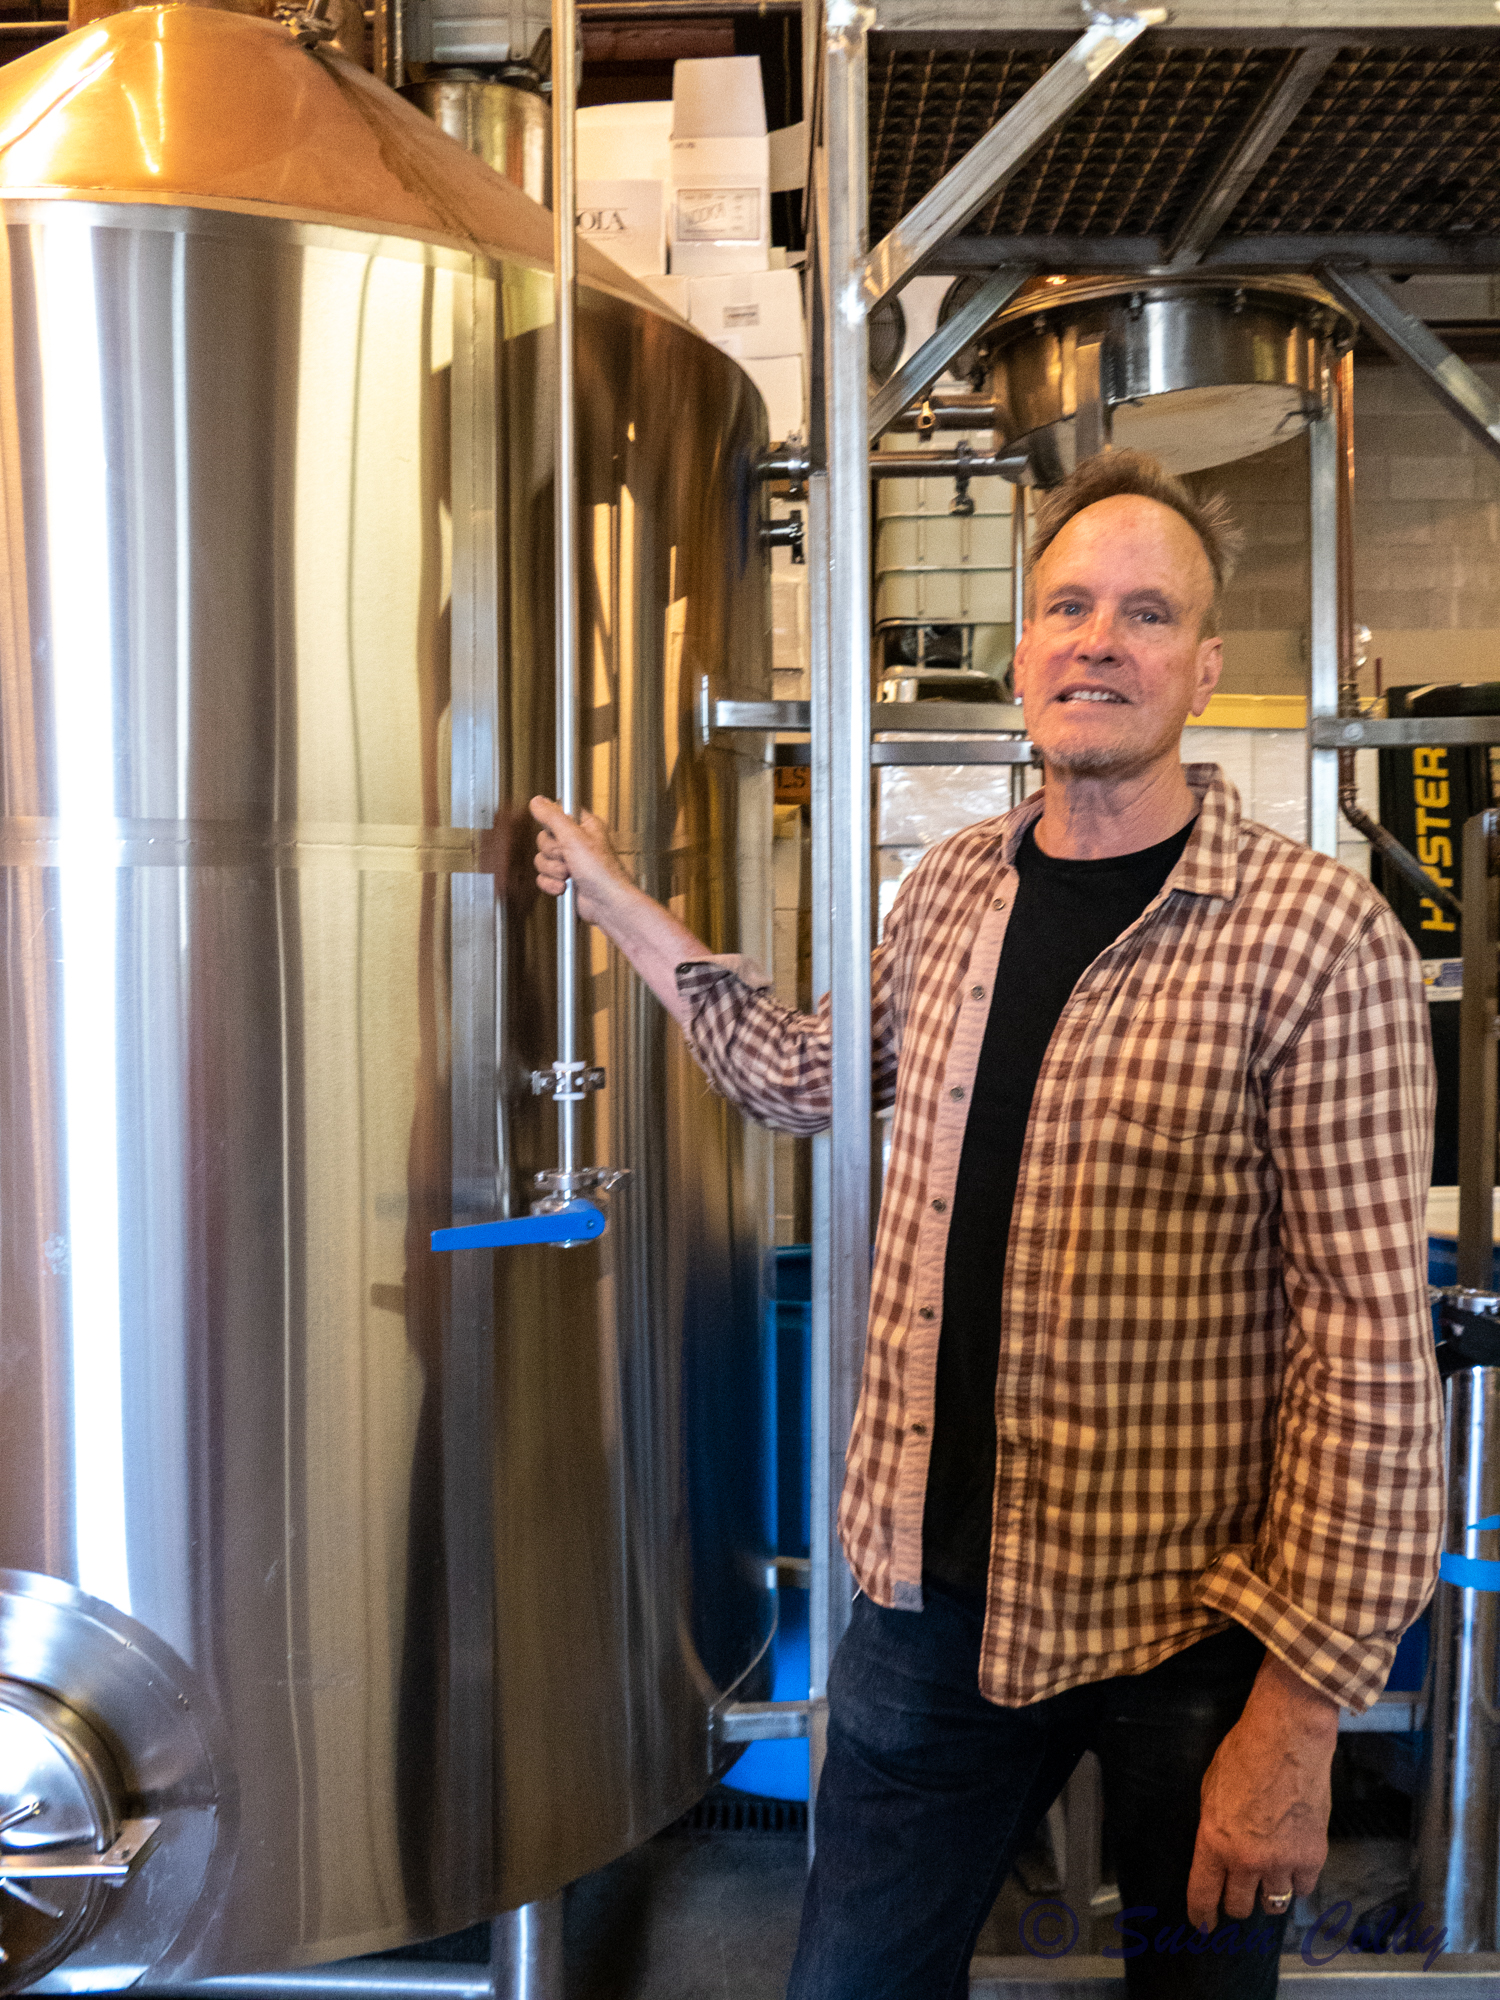 Kirby Kalla-Lewis, owner and head distiller at OOLA Distillery